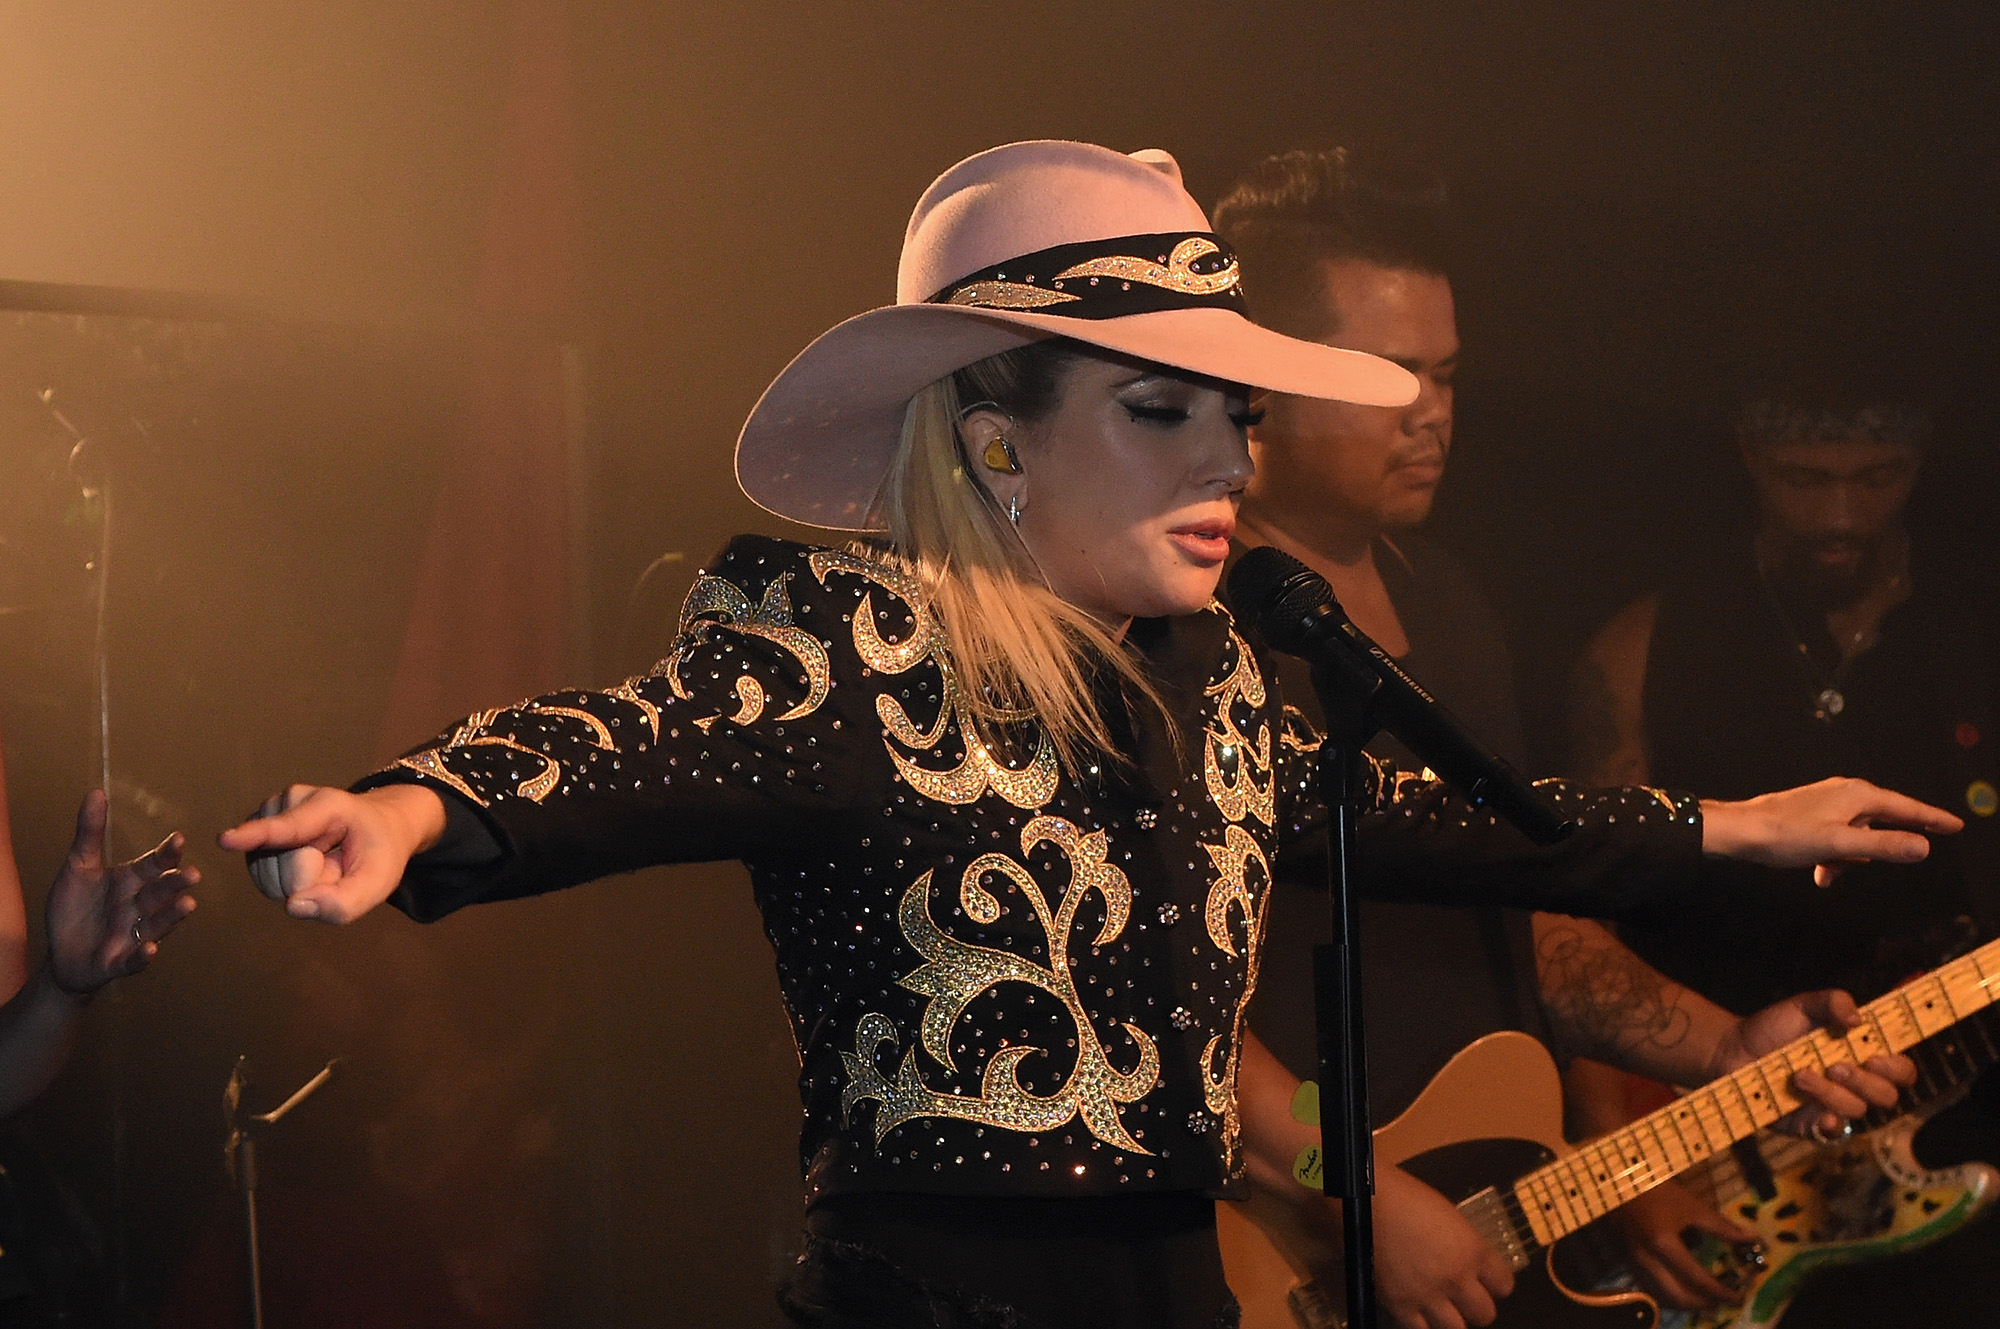 Lady Gaga surprises fans while on the Bud Light x Lady Gaga Dive Bar Tour at the 5 Spot where the singer performed three new tracks off her upcoming album  Joanne  on October 05, 2016 in Nashville, Tennessee.  (Photo by Rick Diamond/Getty Images for Bud Light)